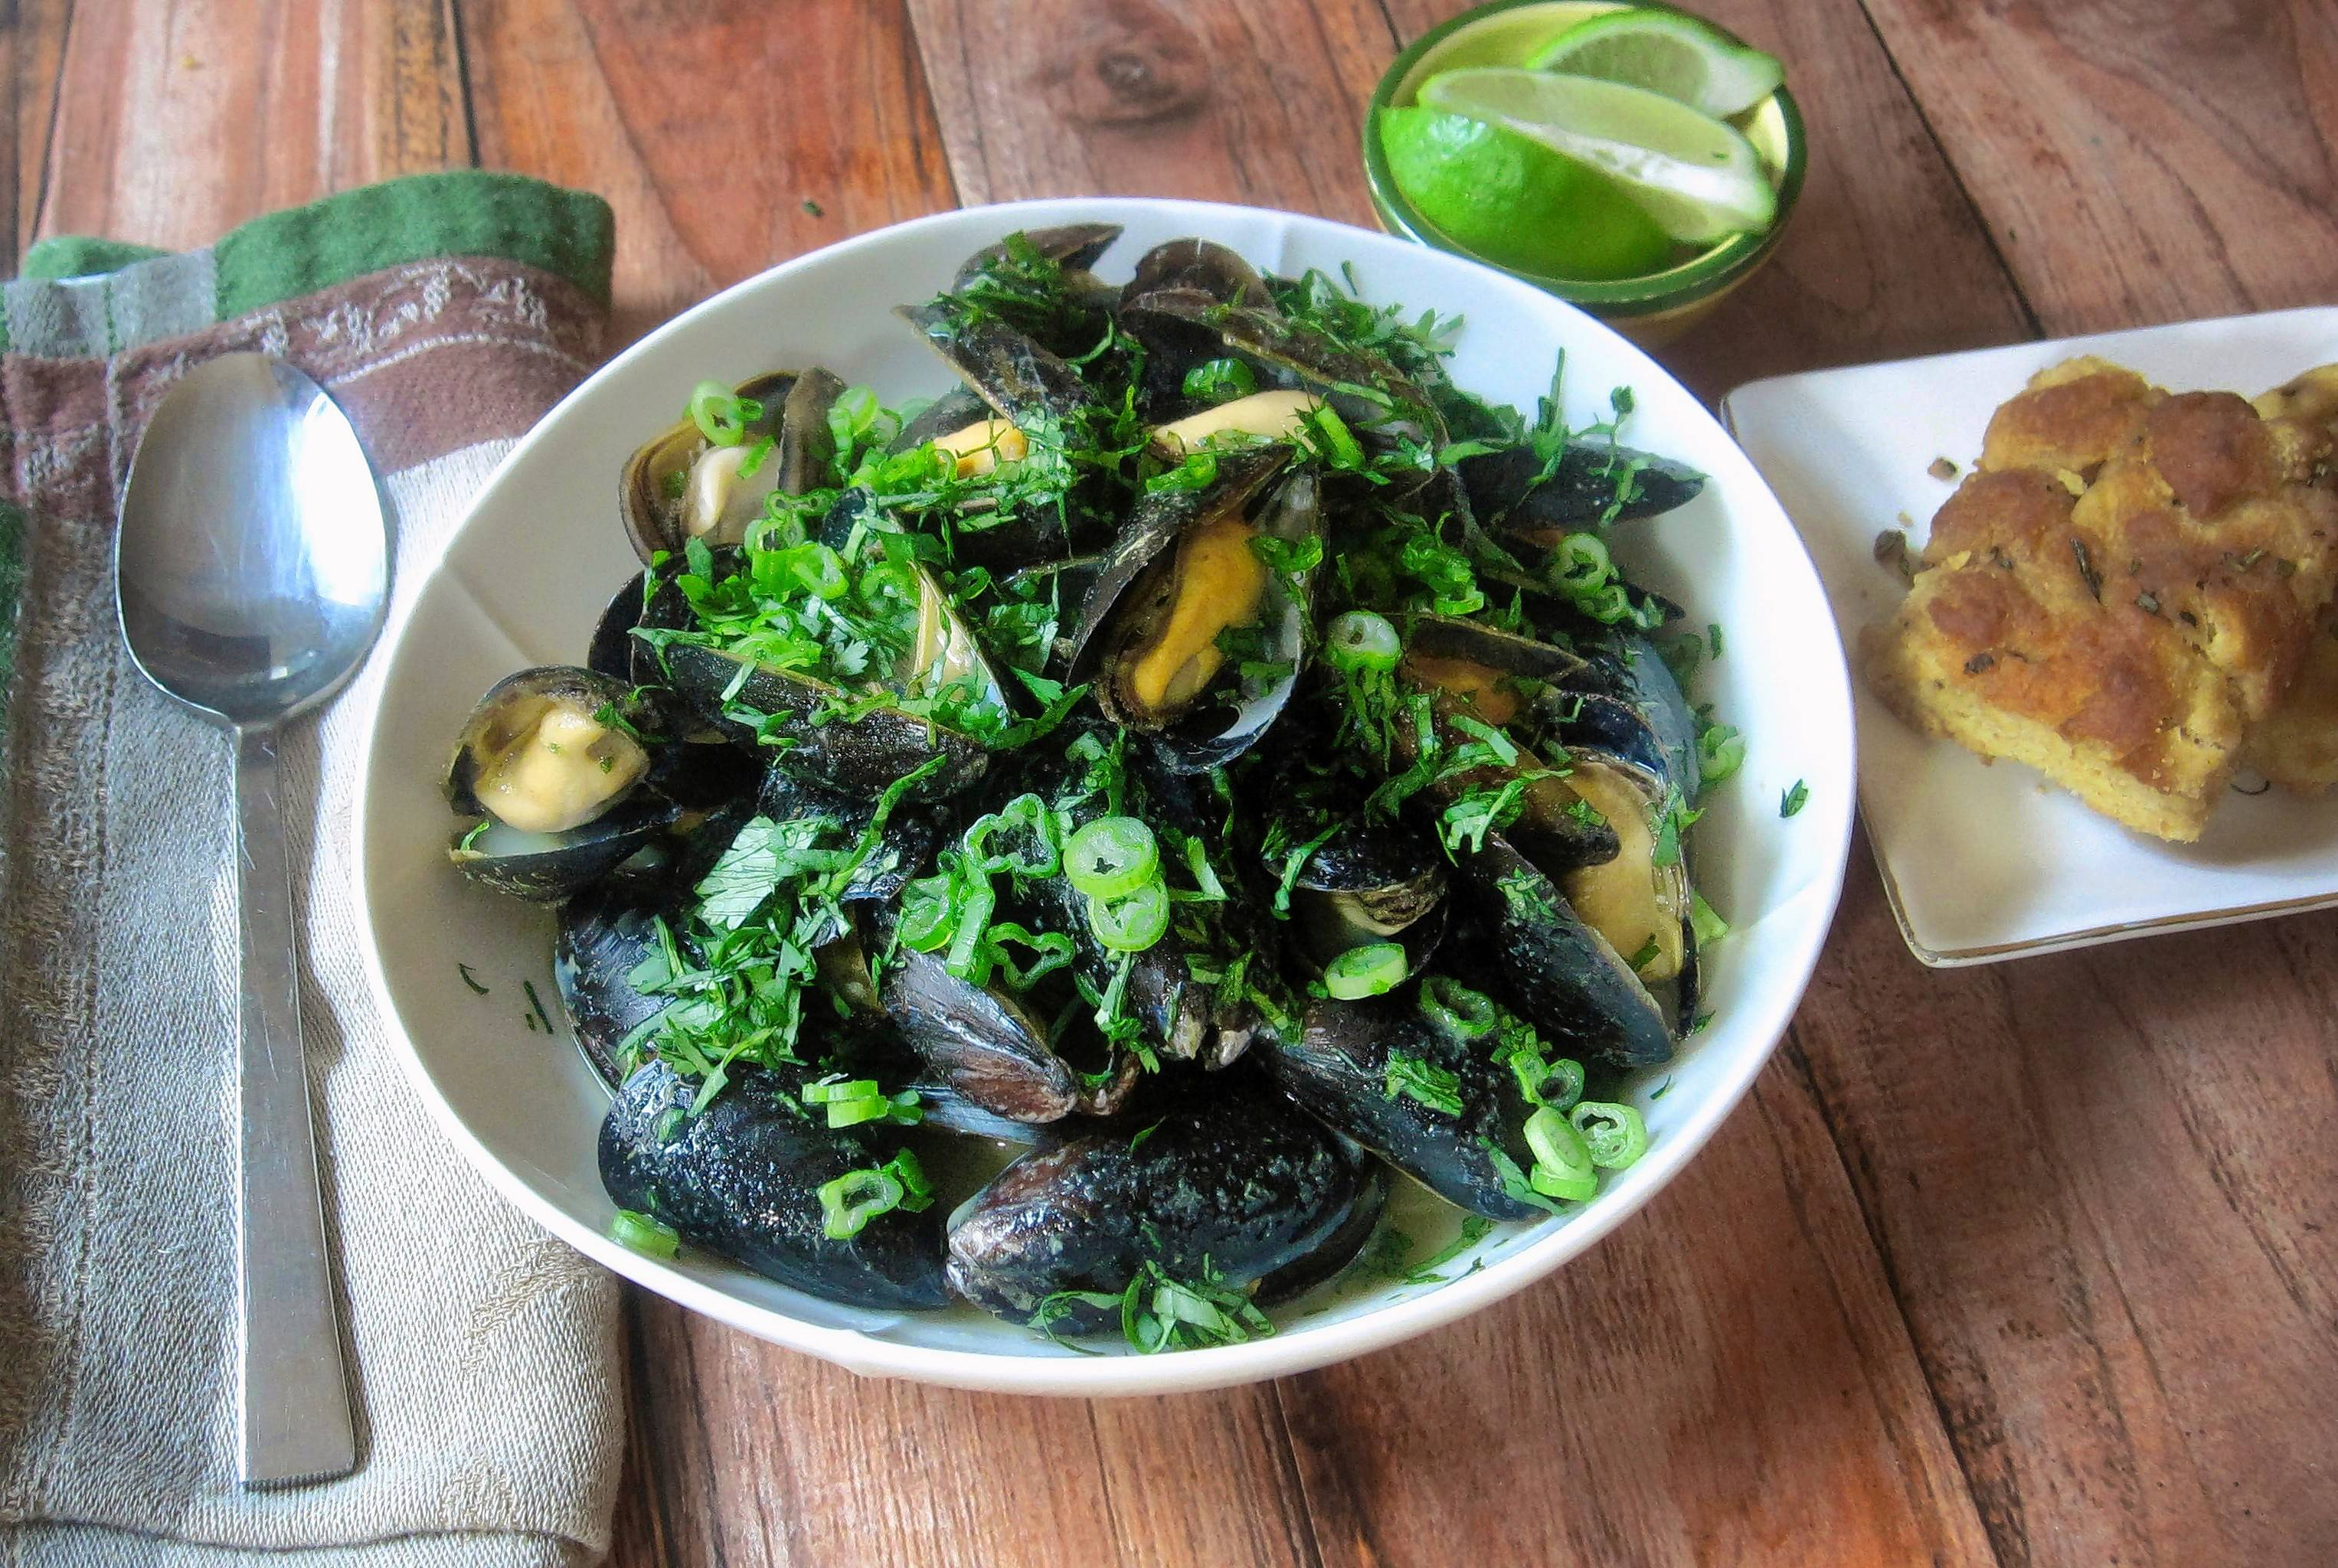 Steamed mussels with Thai flavoring, here, are all dressed in green for St. Patrick's Day.